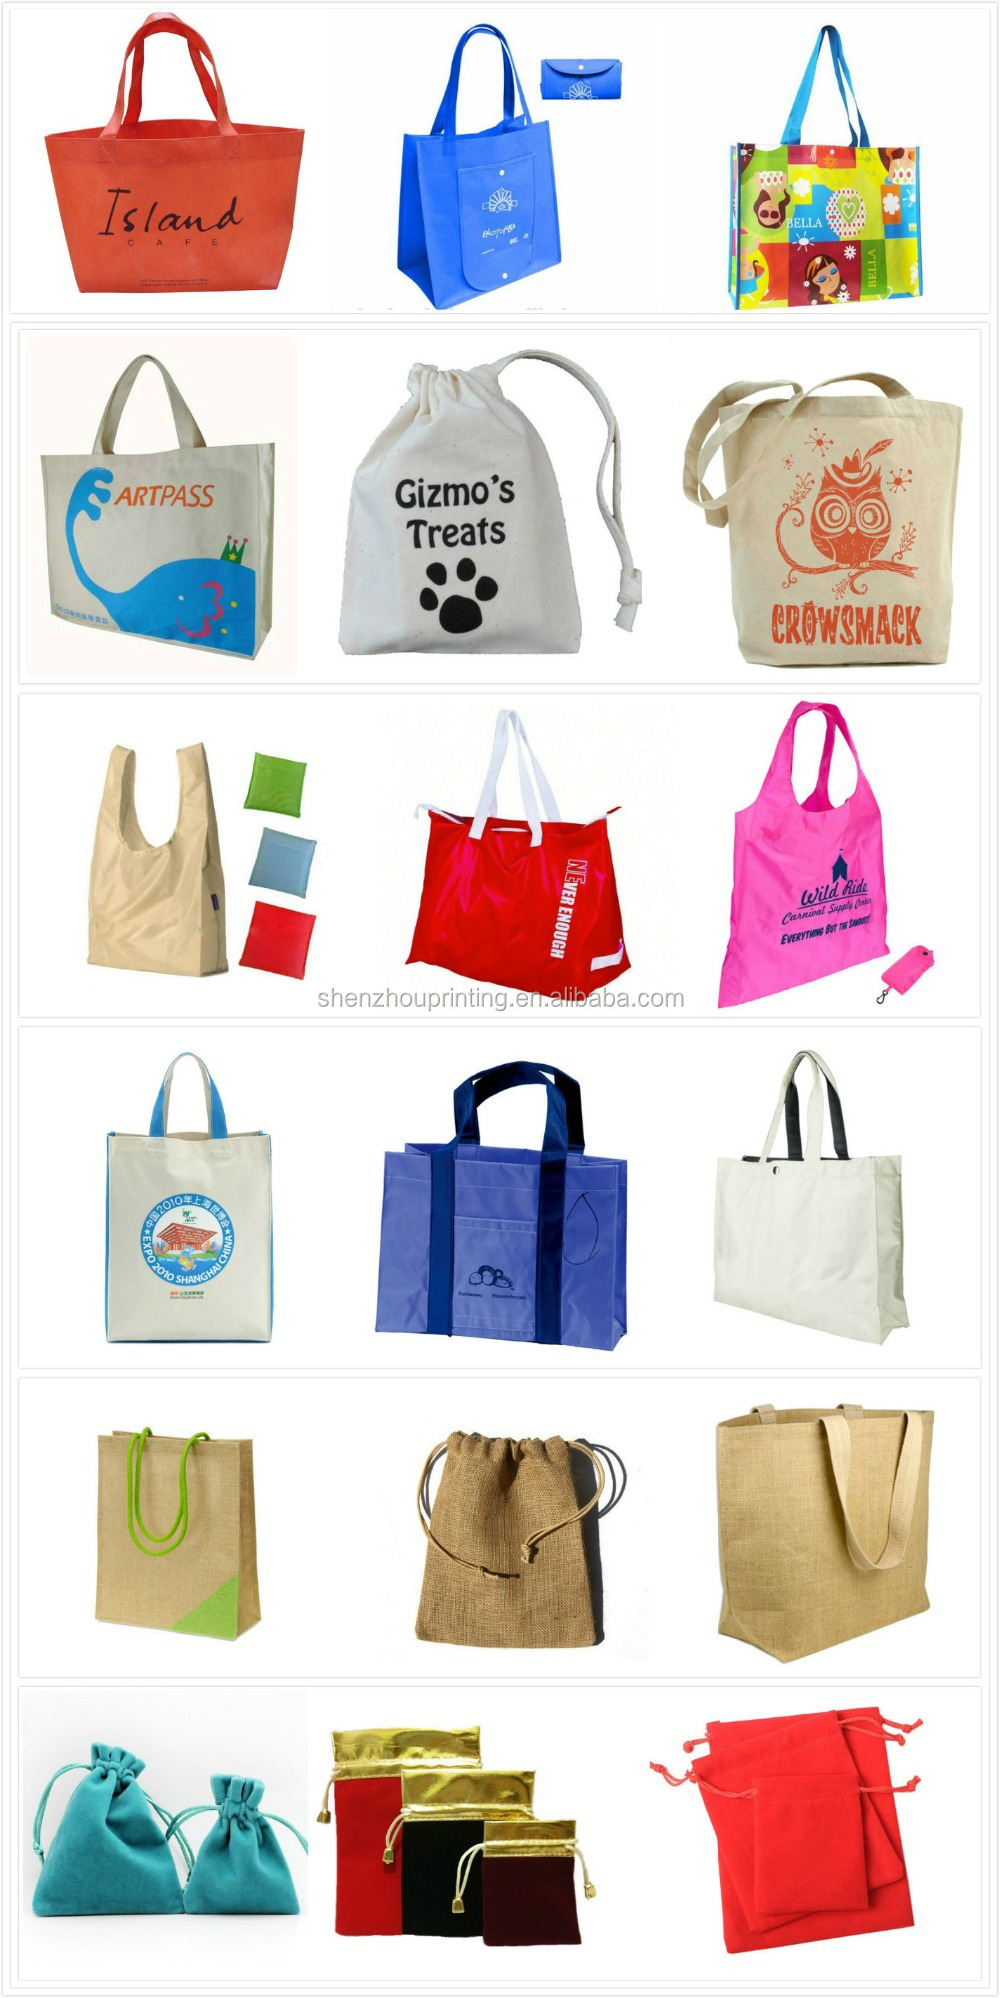 Hot product Specializing in cotton drawstring bag